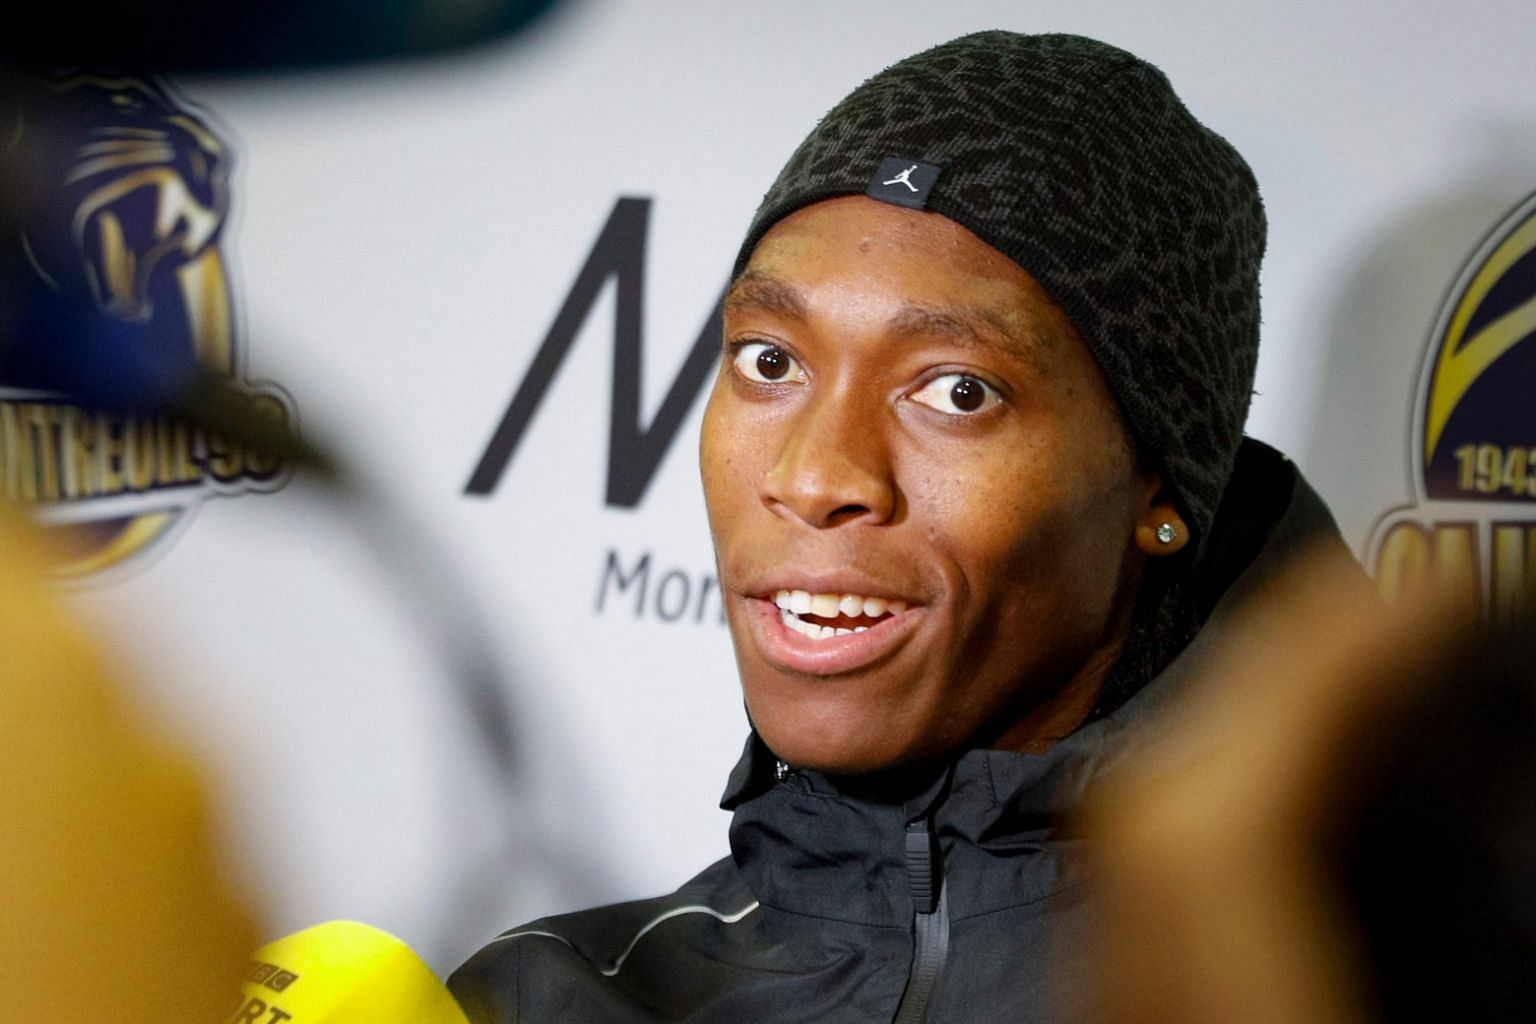 Athletics: Caster Semenya accuses IAAF of using her as a 'human